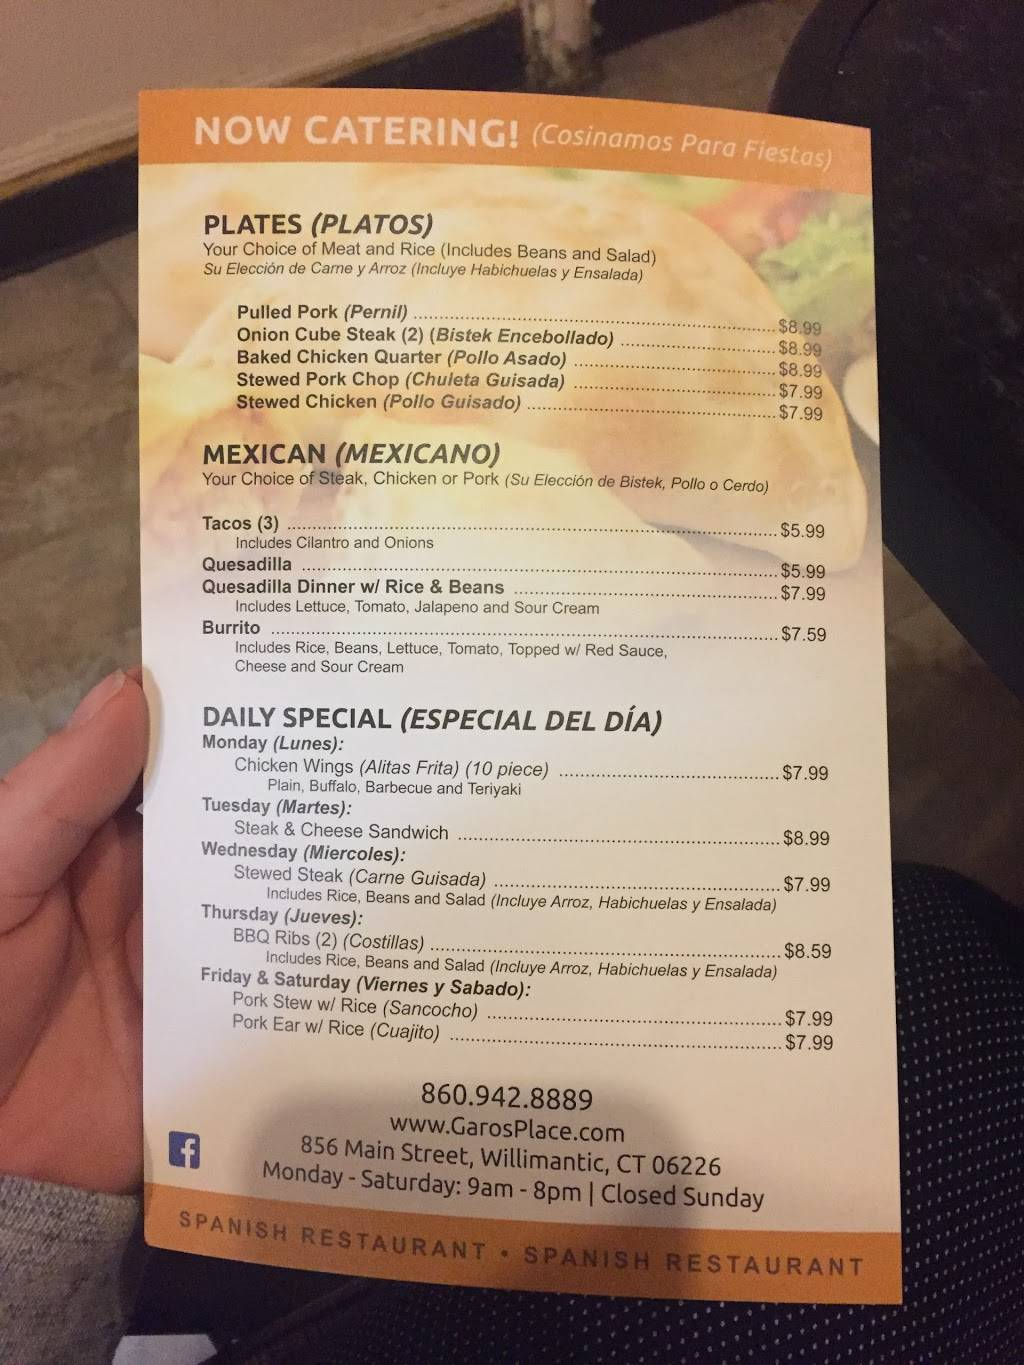 Garos Place   restaurant   856 Main St, Willimantic, CT 06226, USA   8609428889 OR +1 860-942-8889